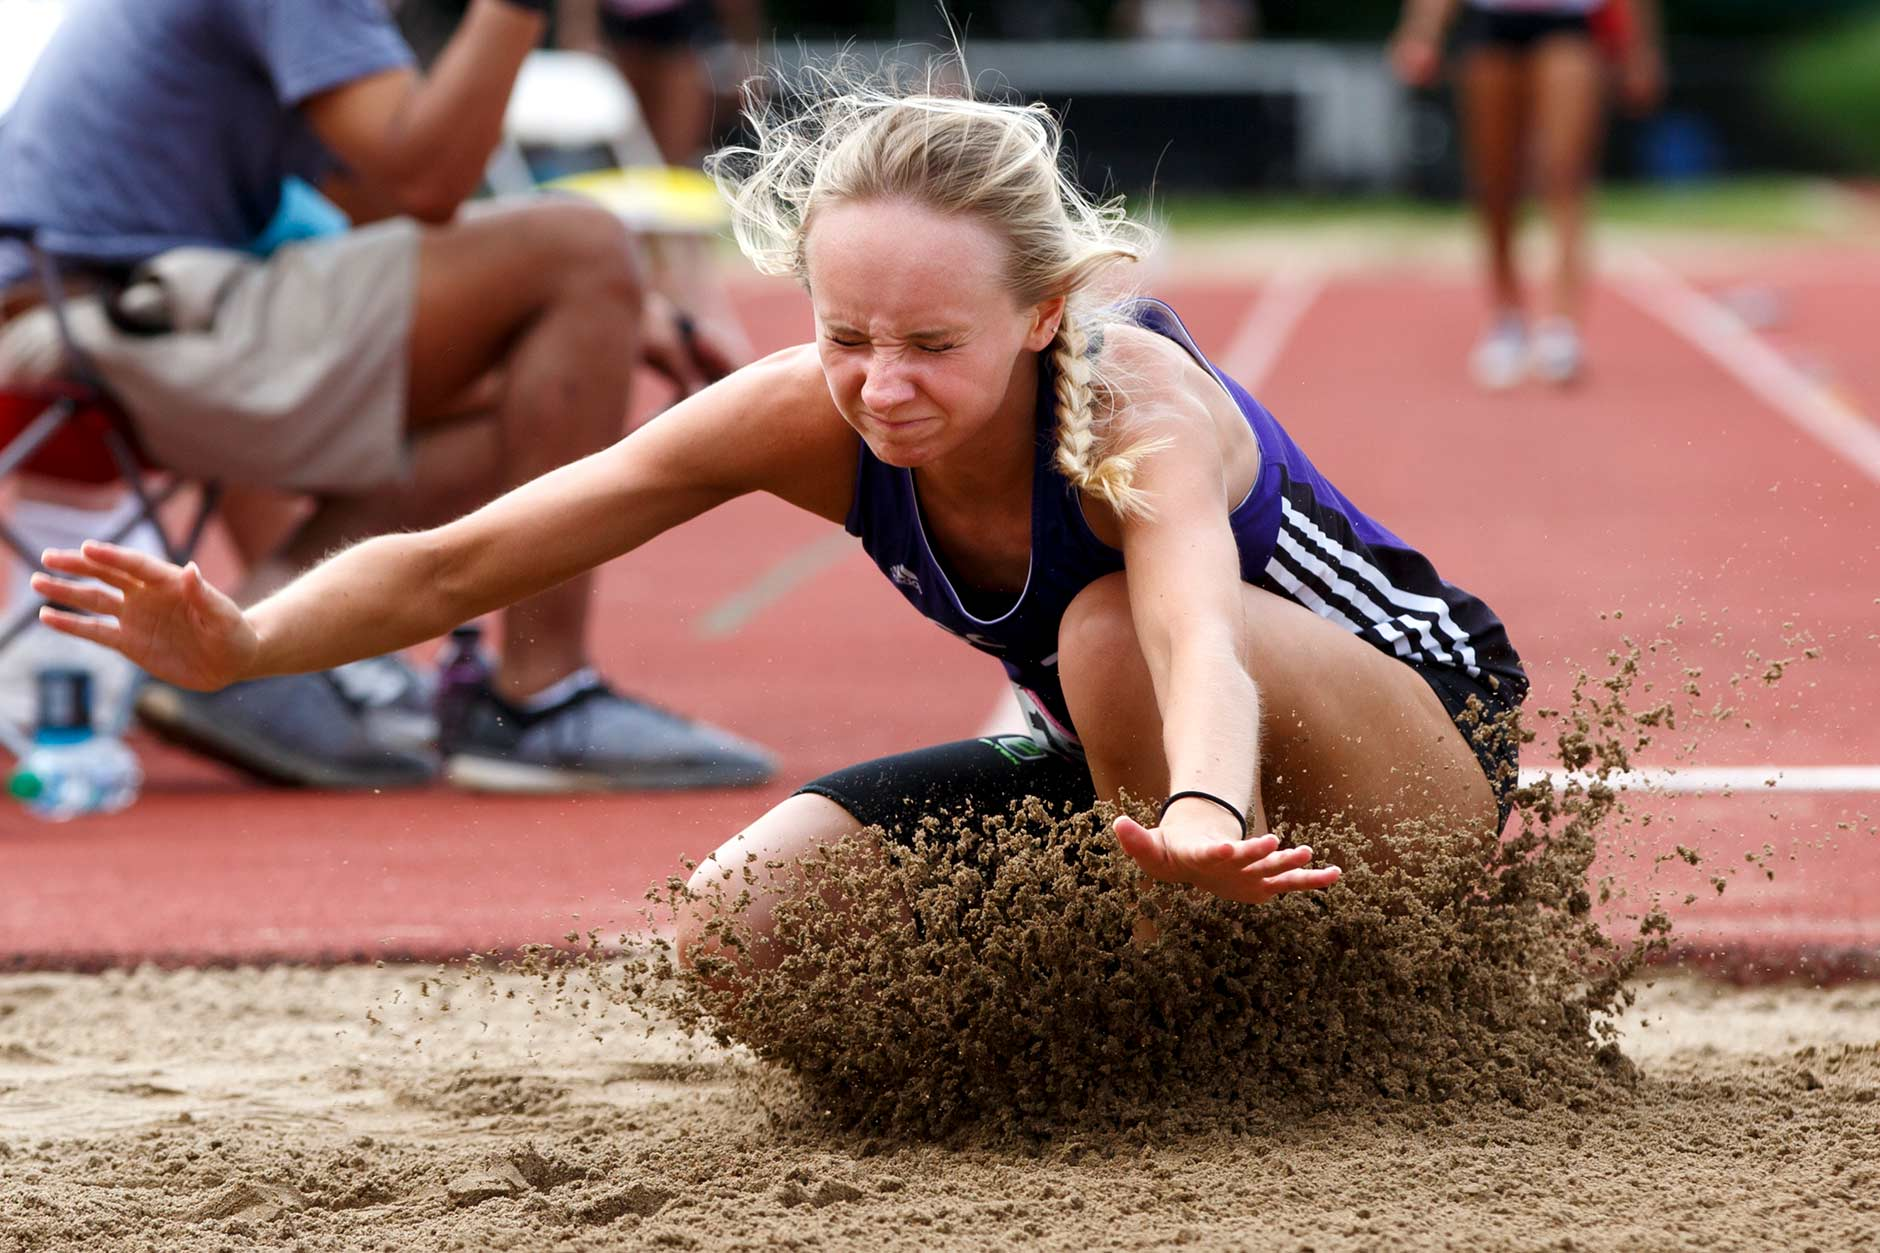 Bloomington South's Faye Bryan competes in the long jump during the IHSAA Girls Track and Field State Finals in Bloomington, Indiana on Saturday, June 1, 2019. (James Brosher for The Herald-Times)